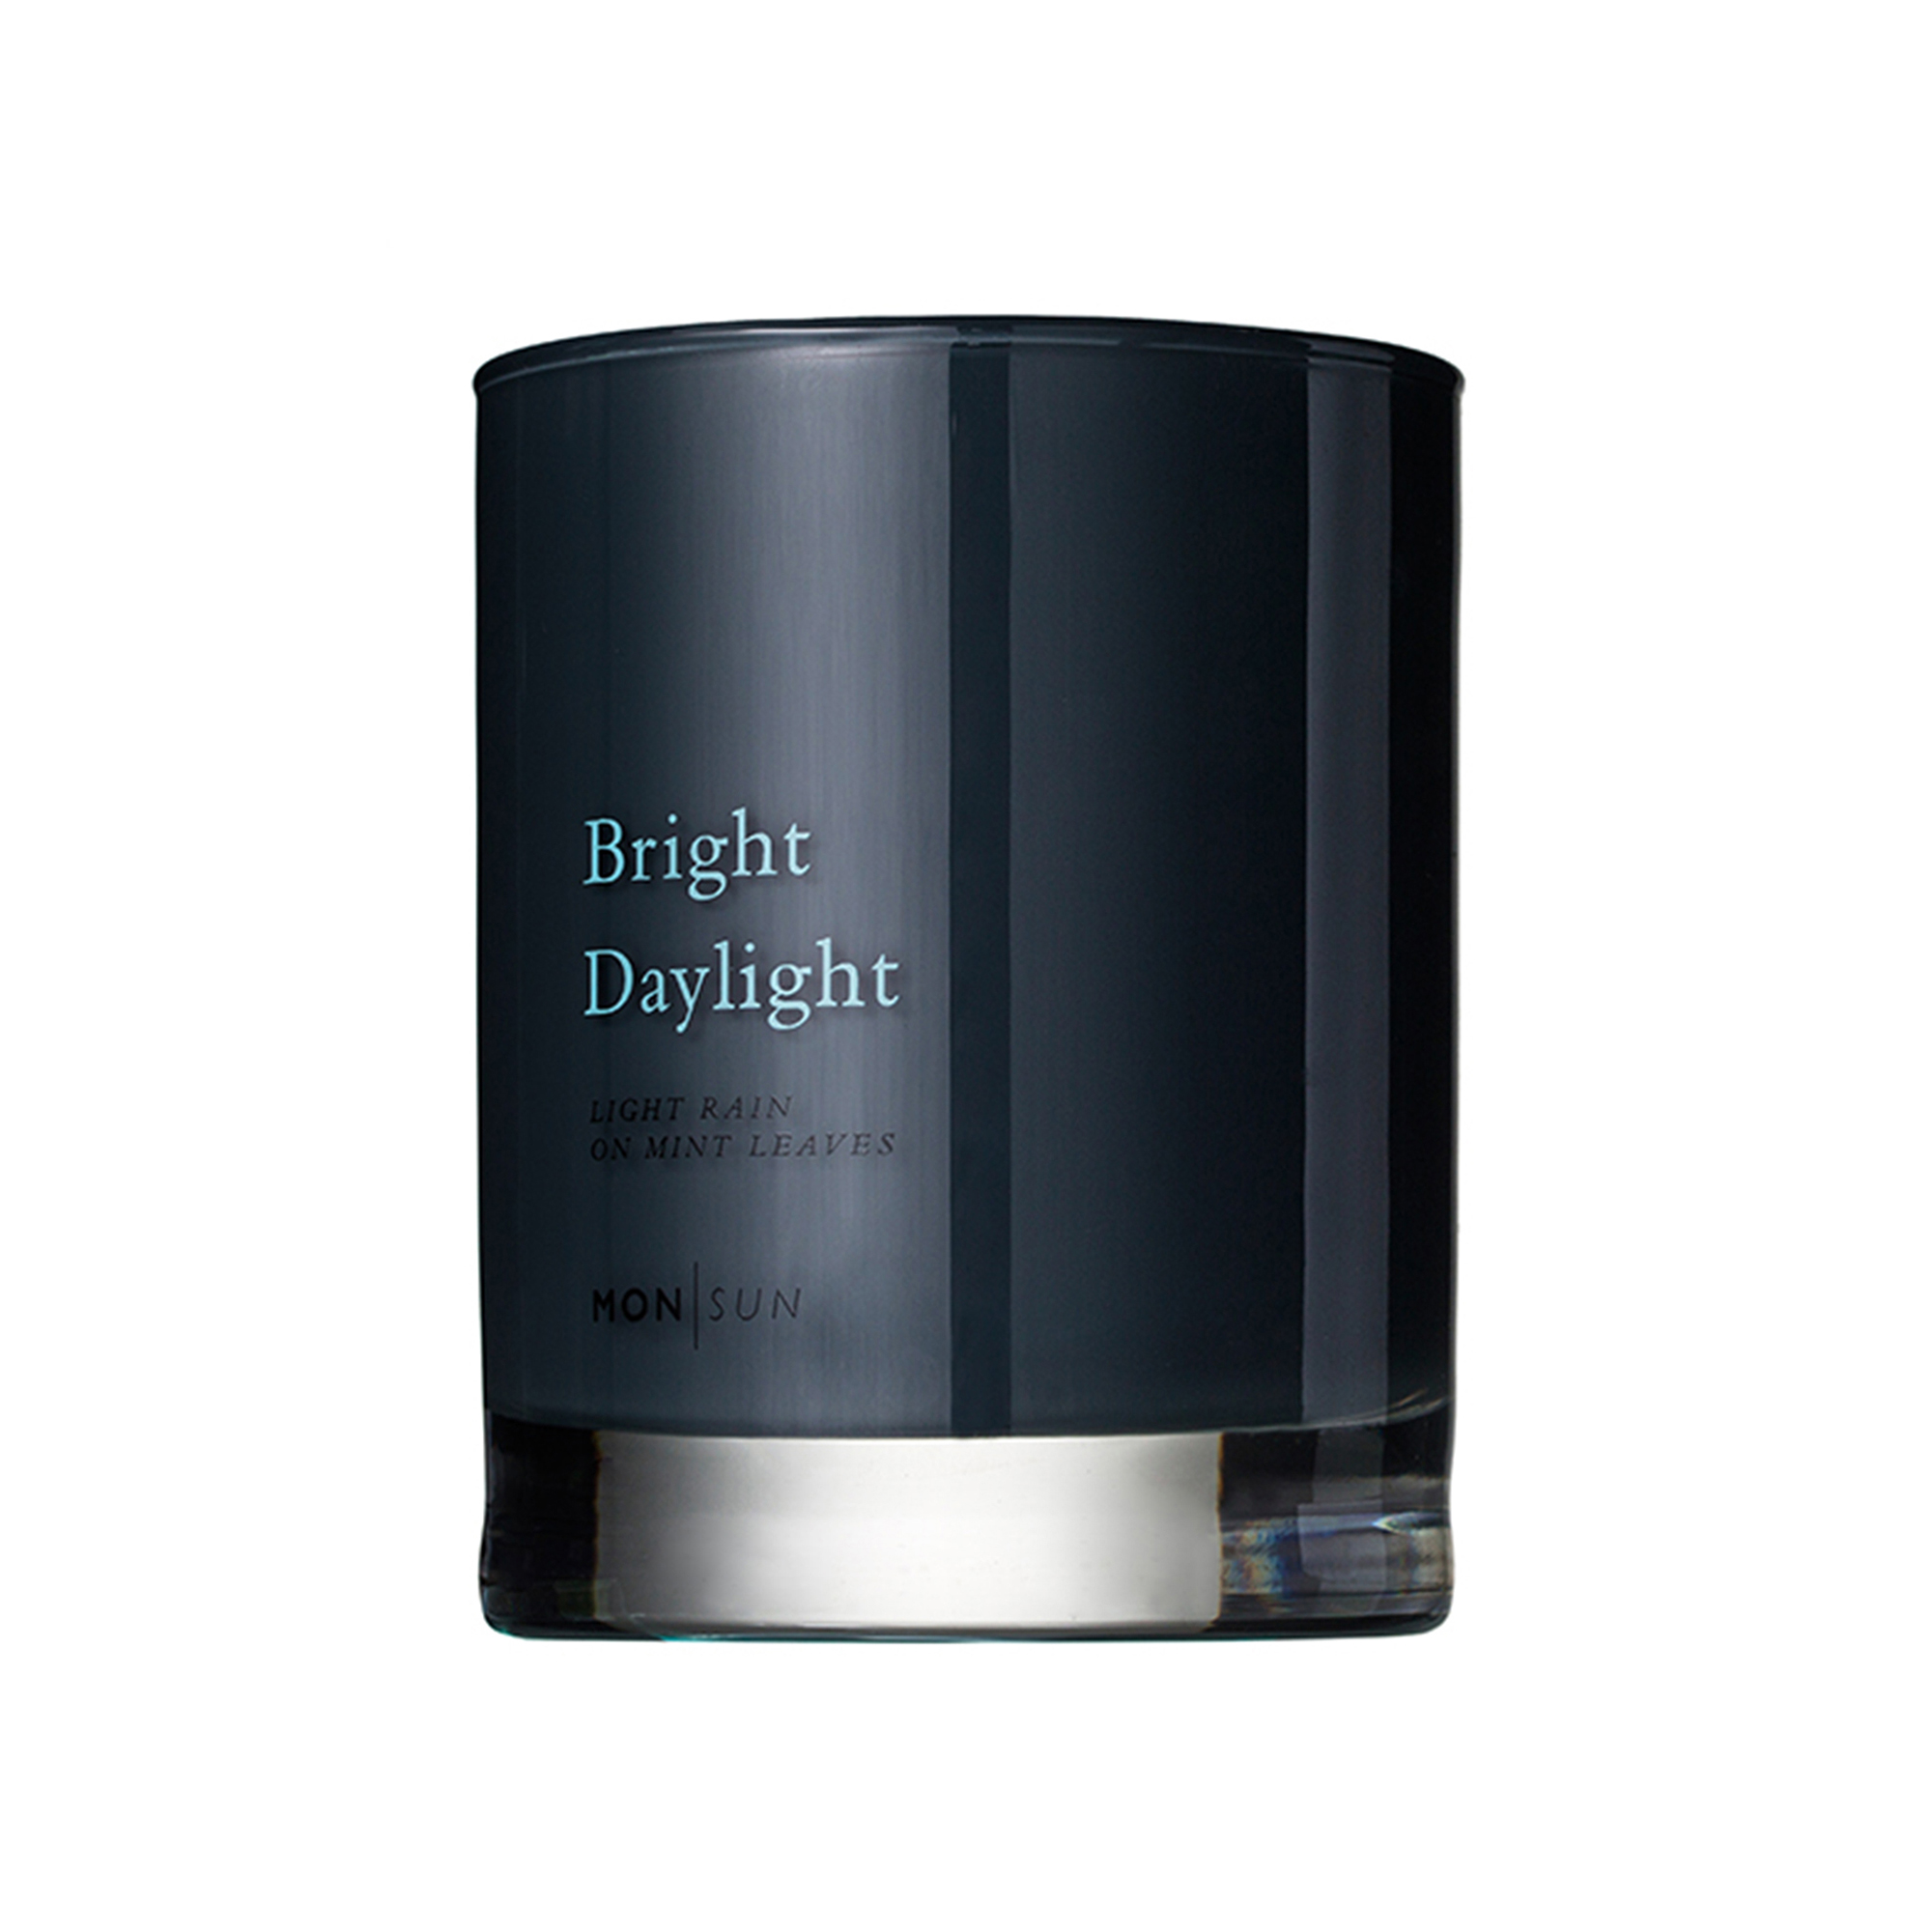 Bright Daylight Detox & Antioxidant Scented Candle